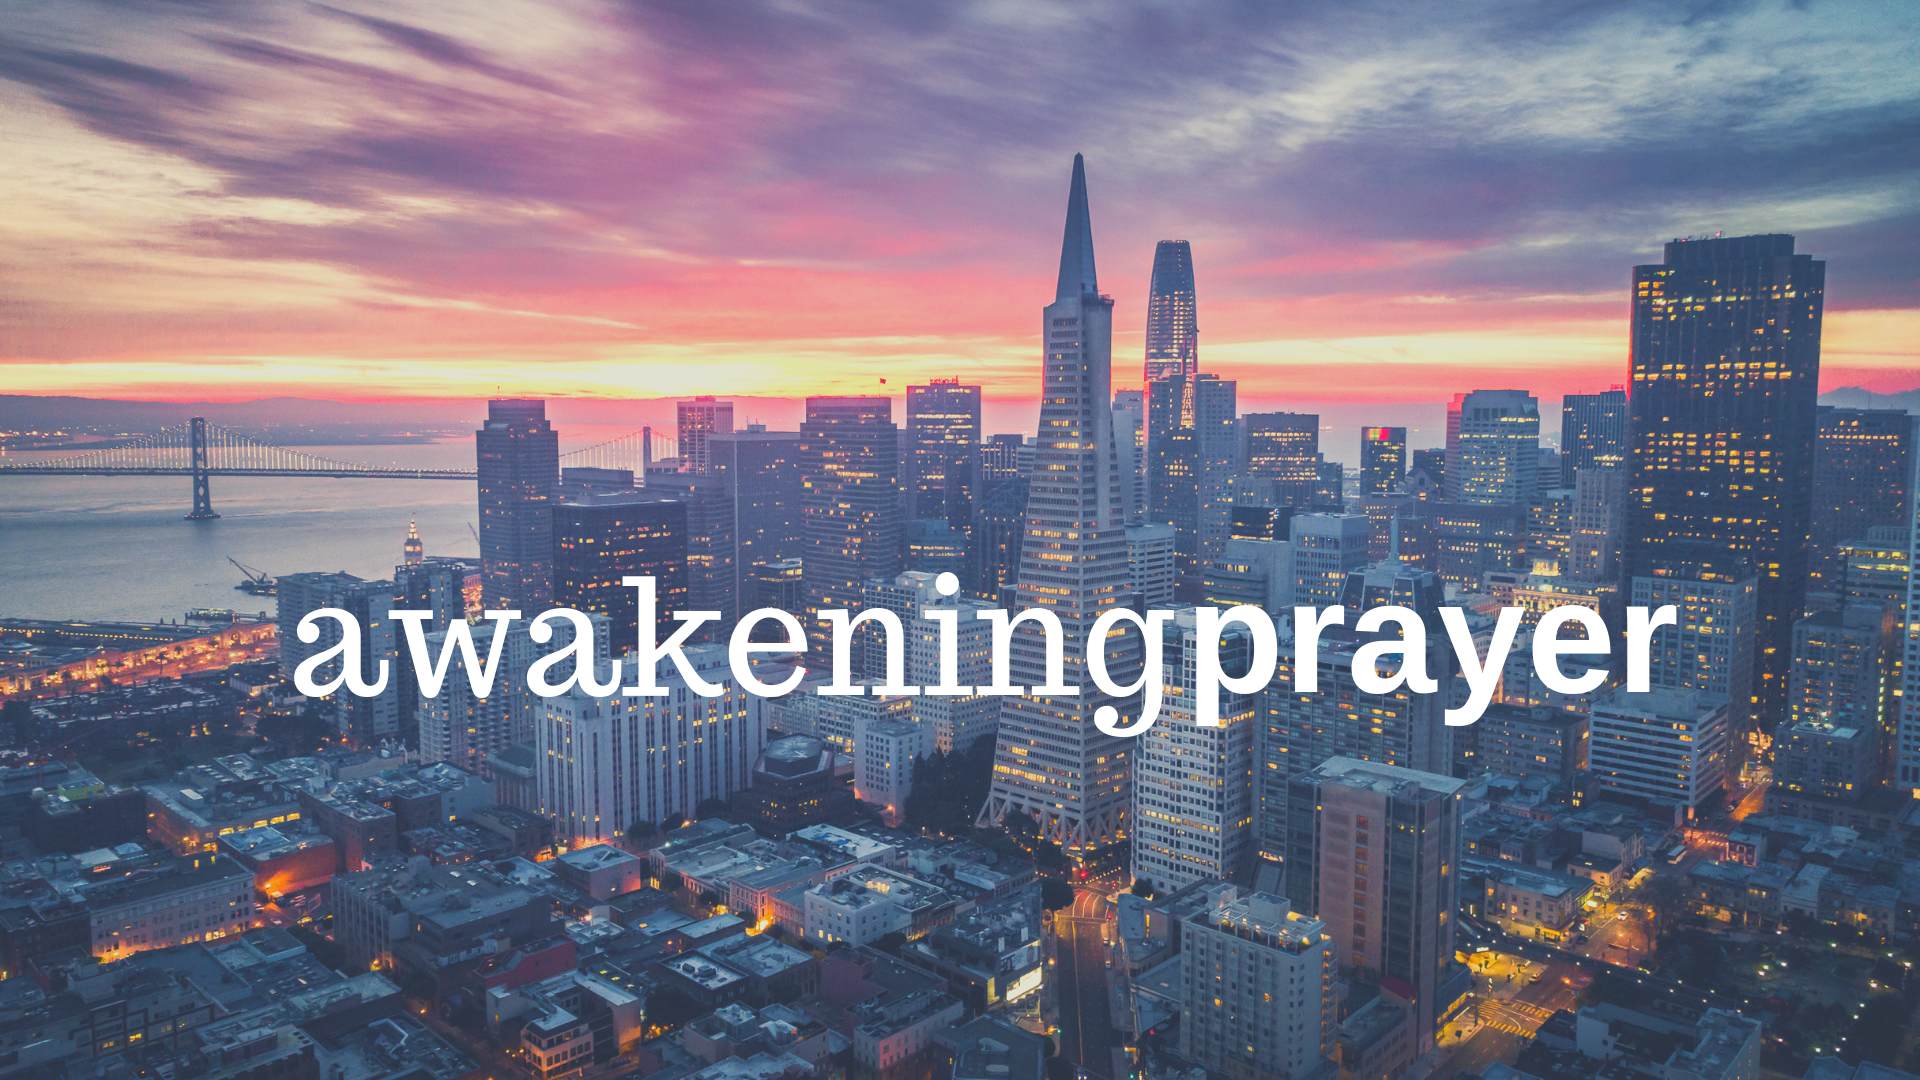 awakening prayer website.png